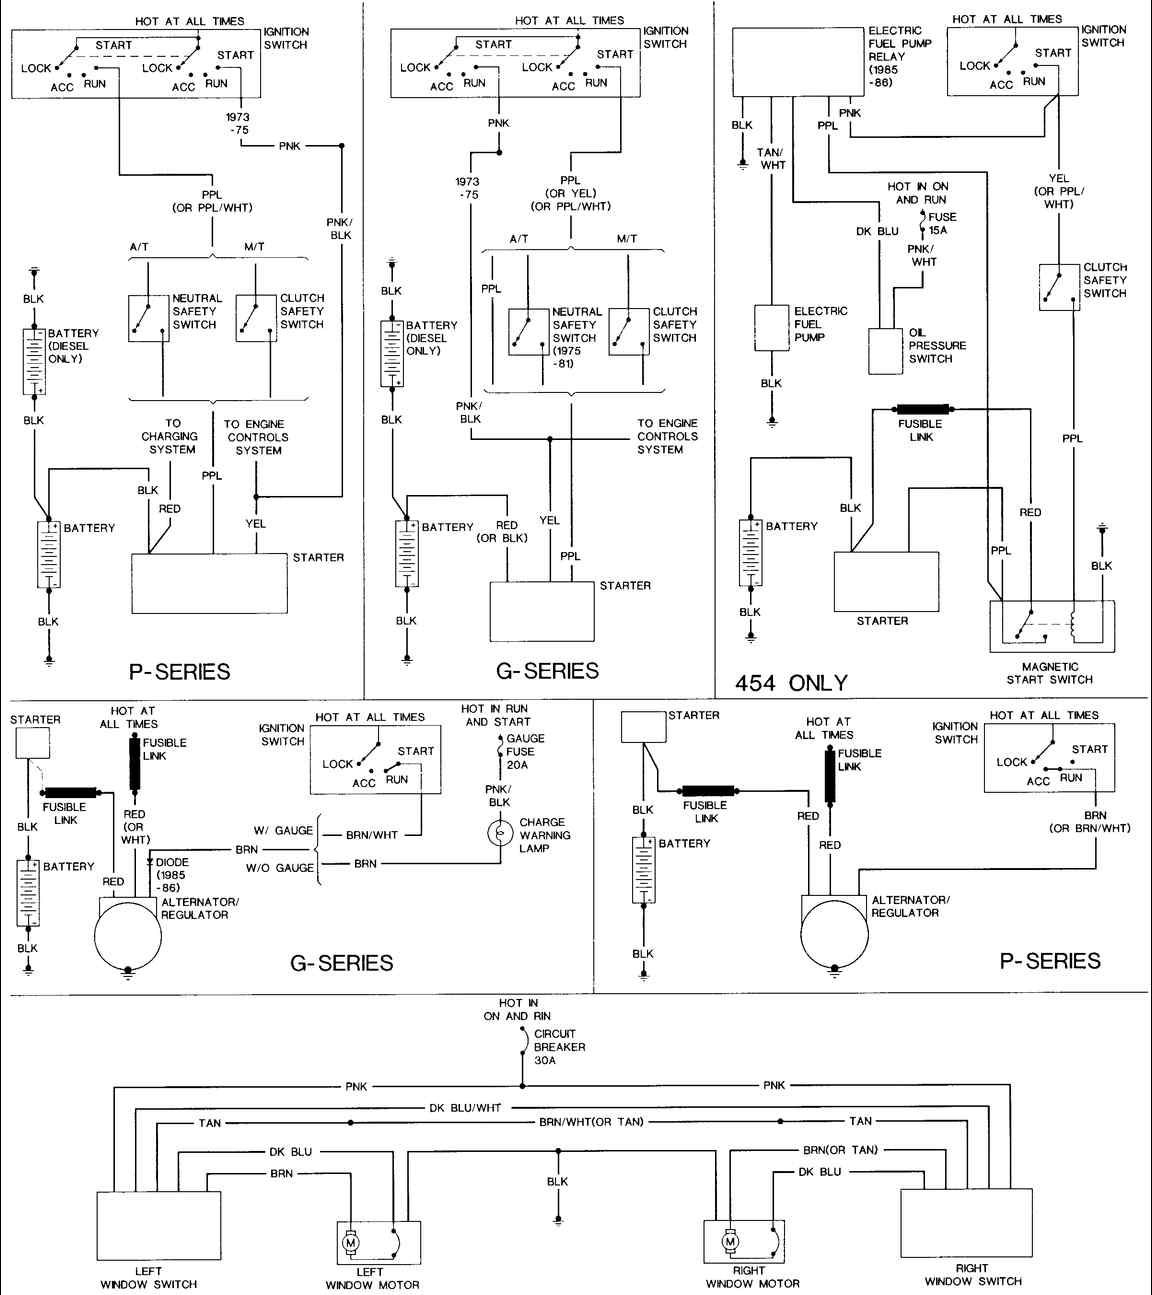 0c73623a181dc376dbb4777e2029d285 85 chevy truck wiring diagram 85 chevy van the steering column 1985 chevy truck wiring diagram at n-0.co